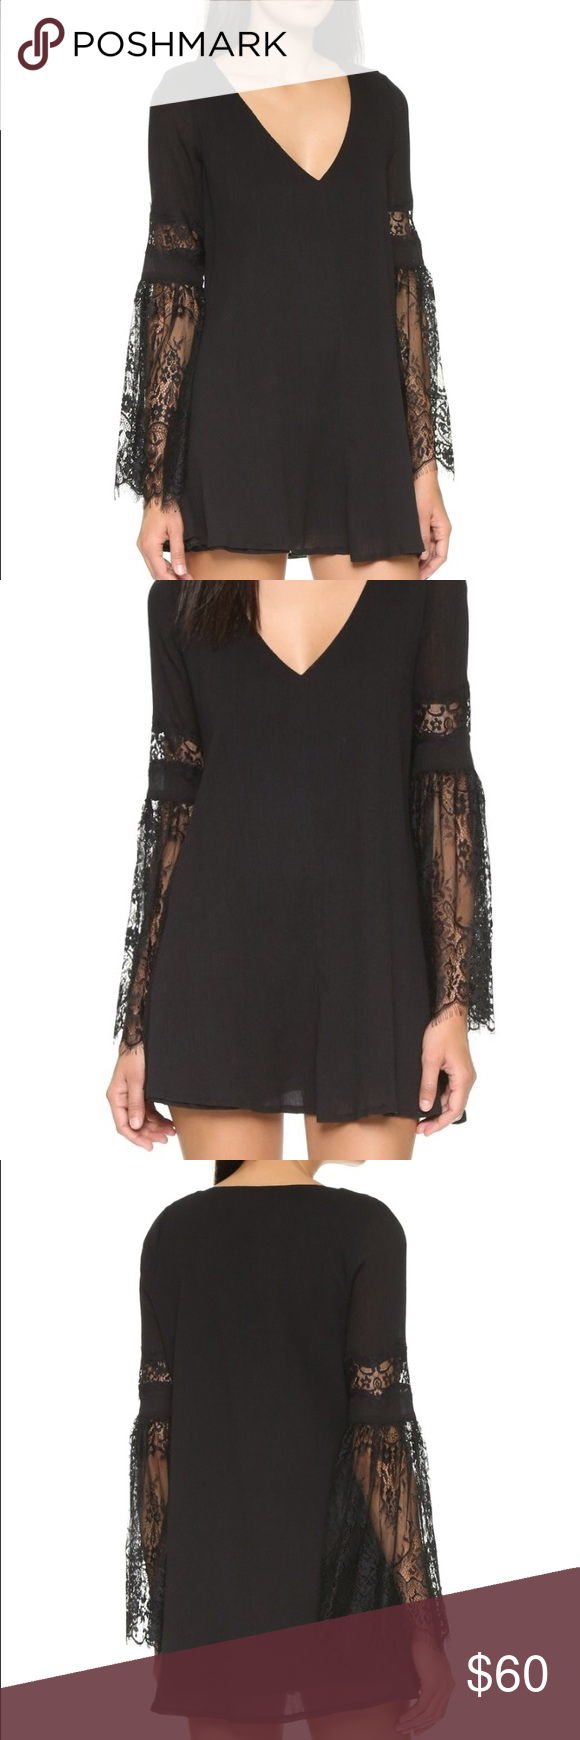 l*space Tunic/Swim Suit Cover Up Small, black crepe fabric and lace tunic. Perfect to use as a beach cover up or worn alone as a dress. Machine or hand wash - worn once. Purchased online from Shopbop. l*space Swim Coverups